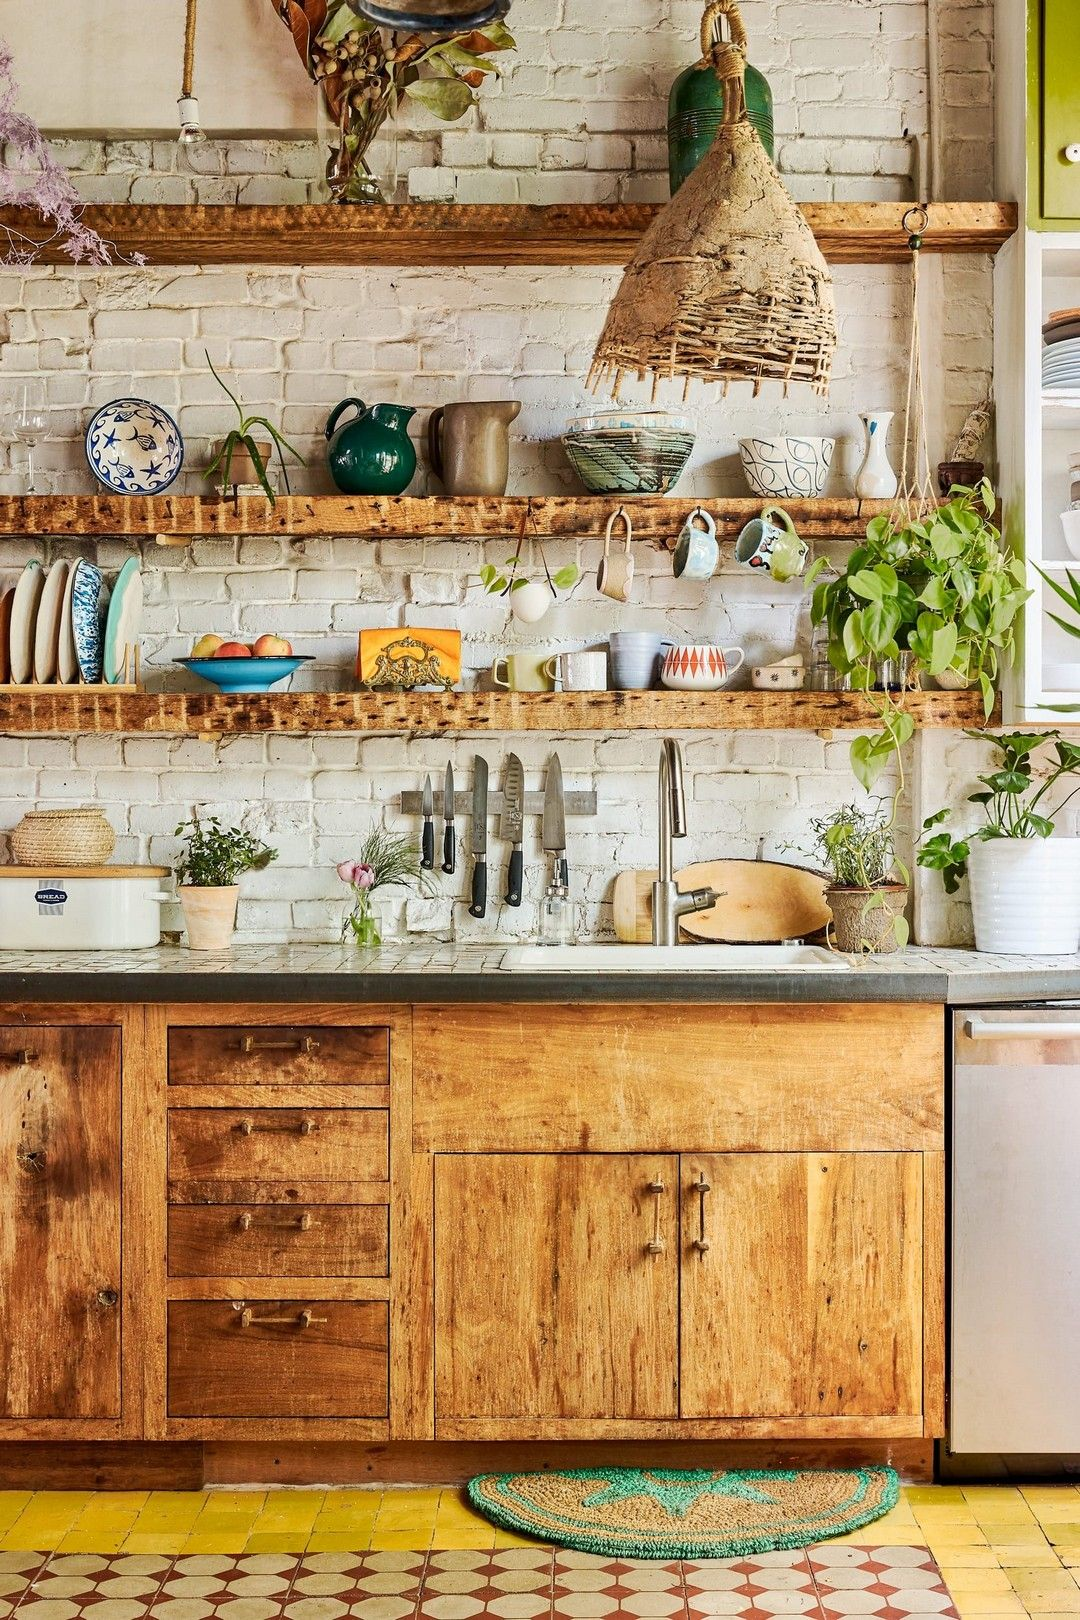 29 Design Ideas For Boho Style Kitchens If You Want To Adopt The Bohemian Style For Your Kitchen Then Rustic Kitchen Boho Style Kitchen Rustic Kitchen Design